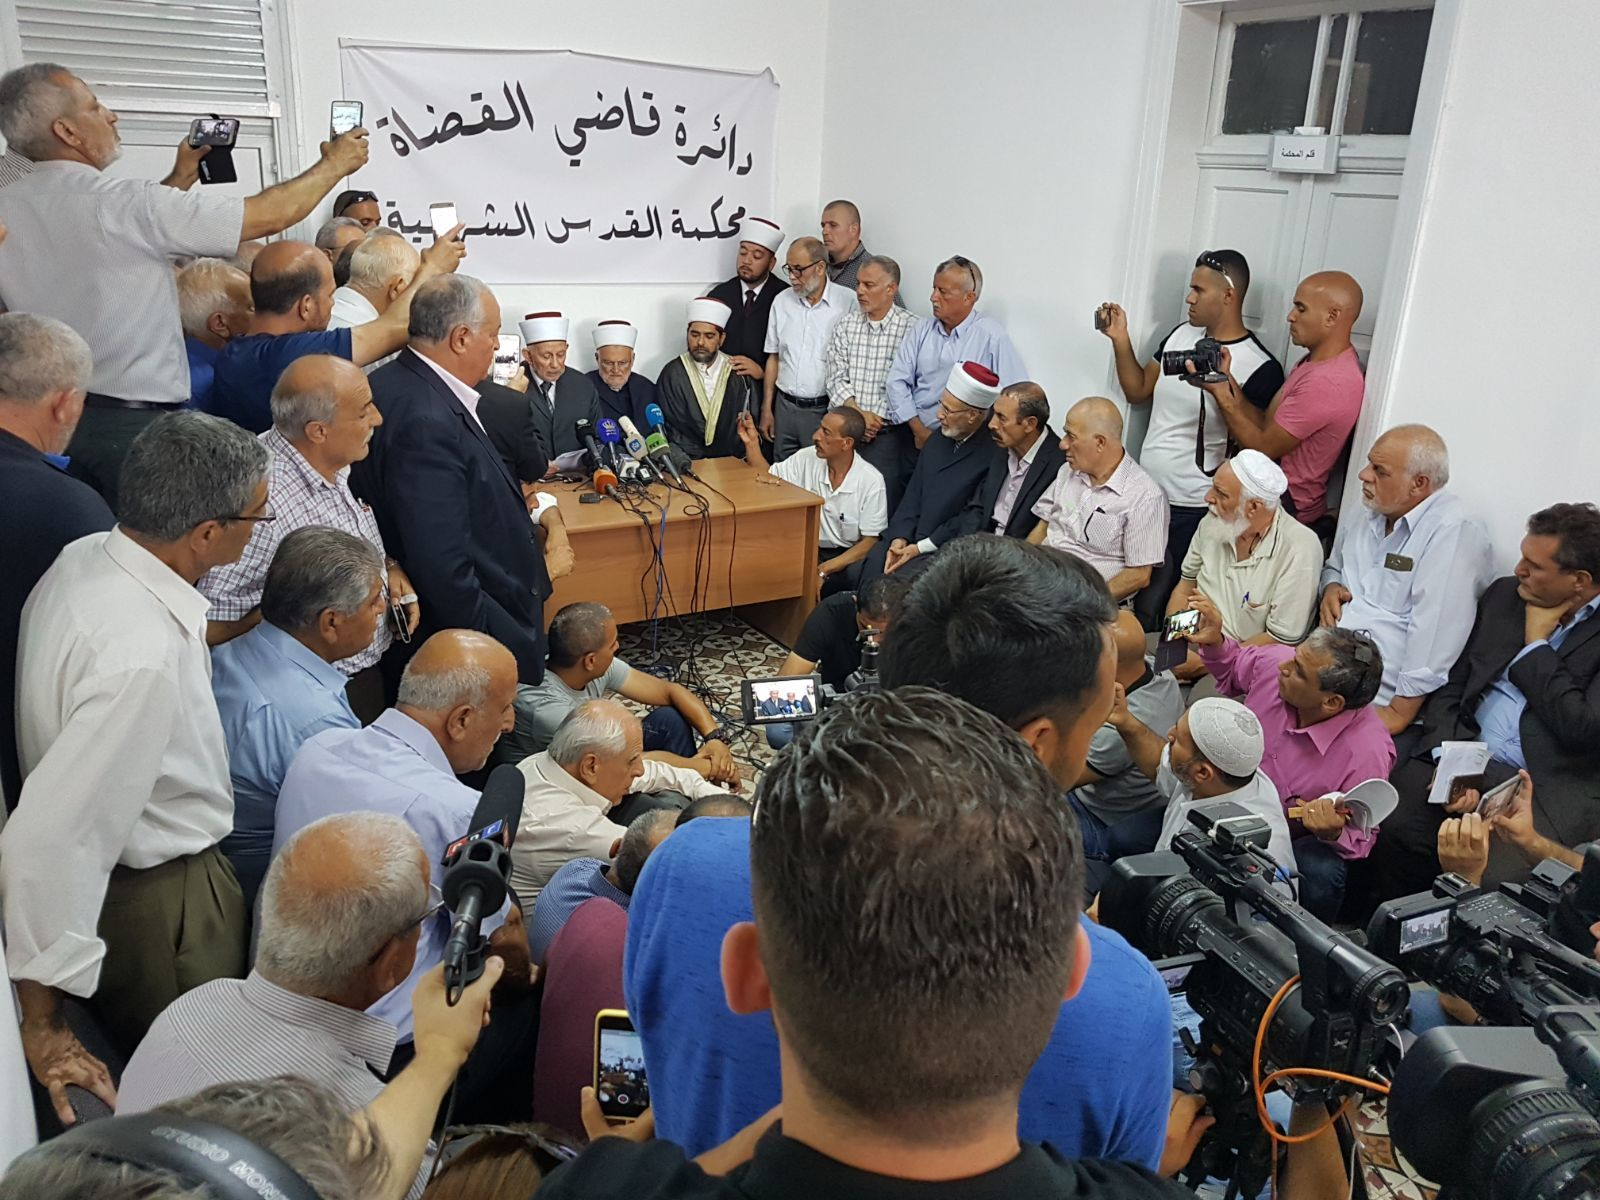 Muslim leaders announce the Muslim return to pray at Temple Mount, July 27, 2017.